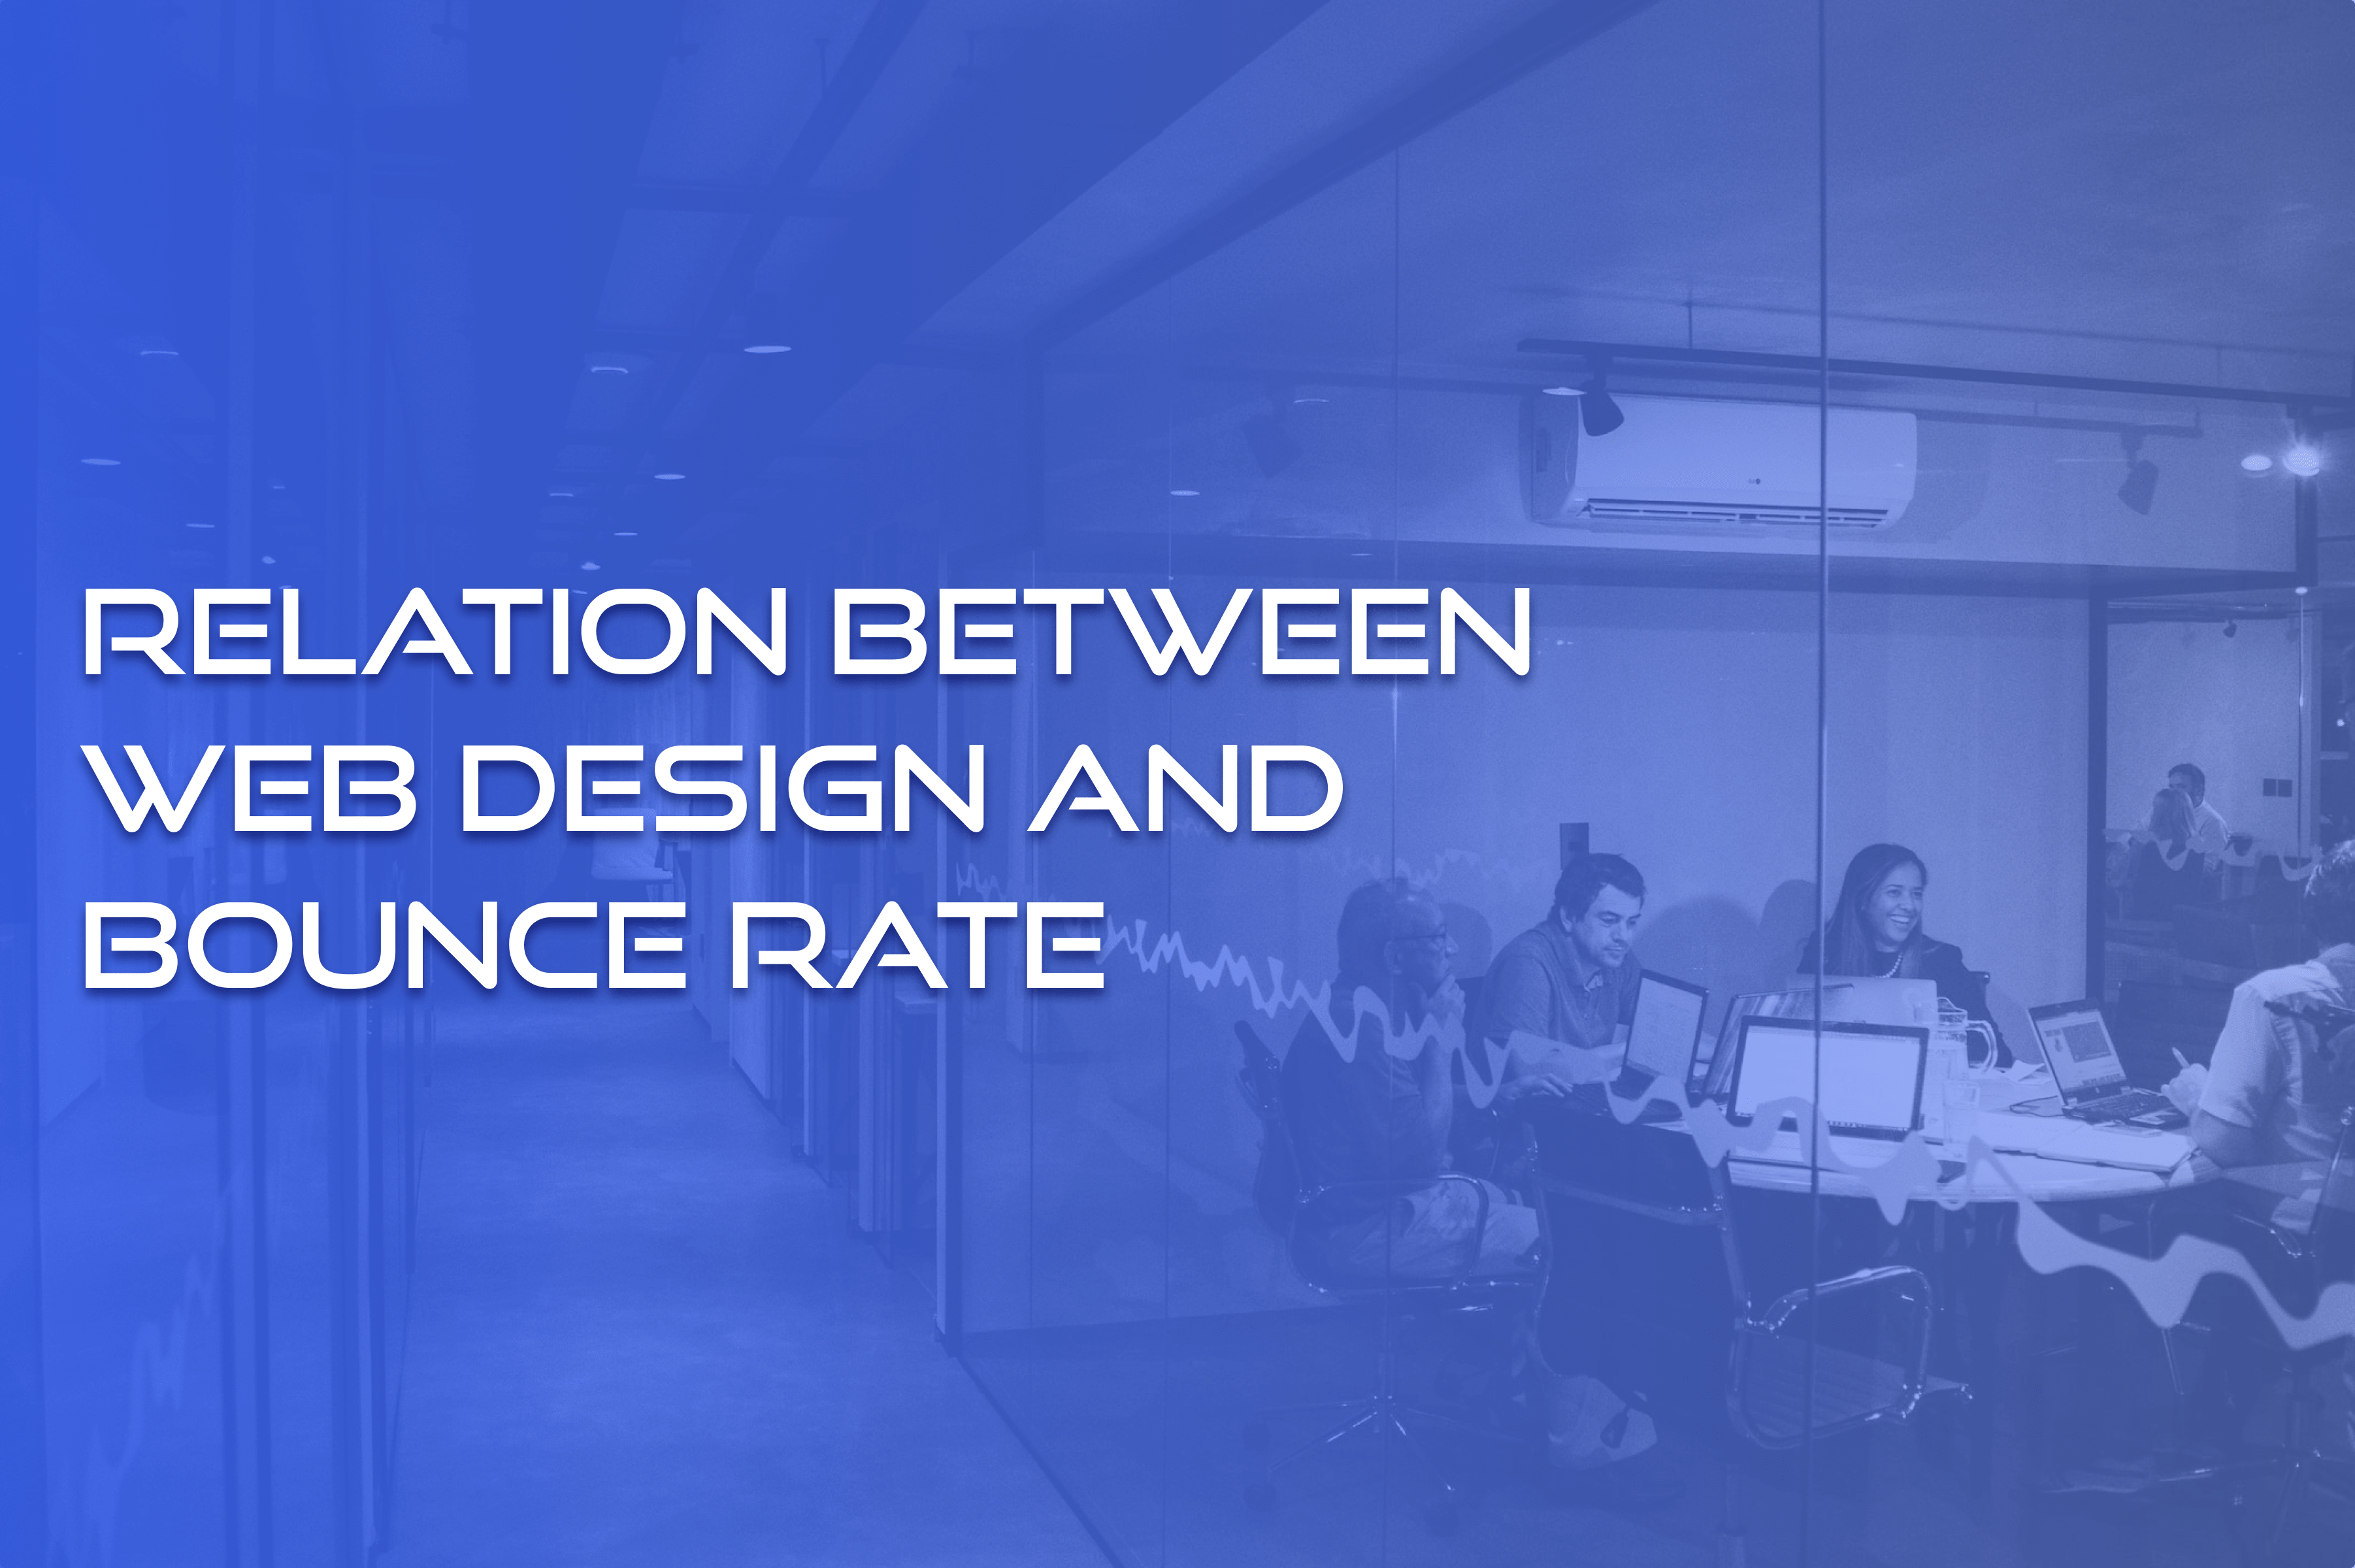 does bad web design affect bounce rate